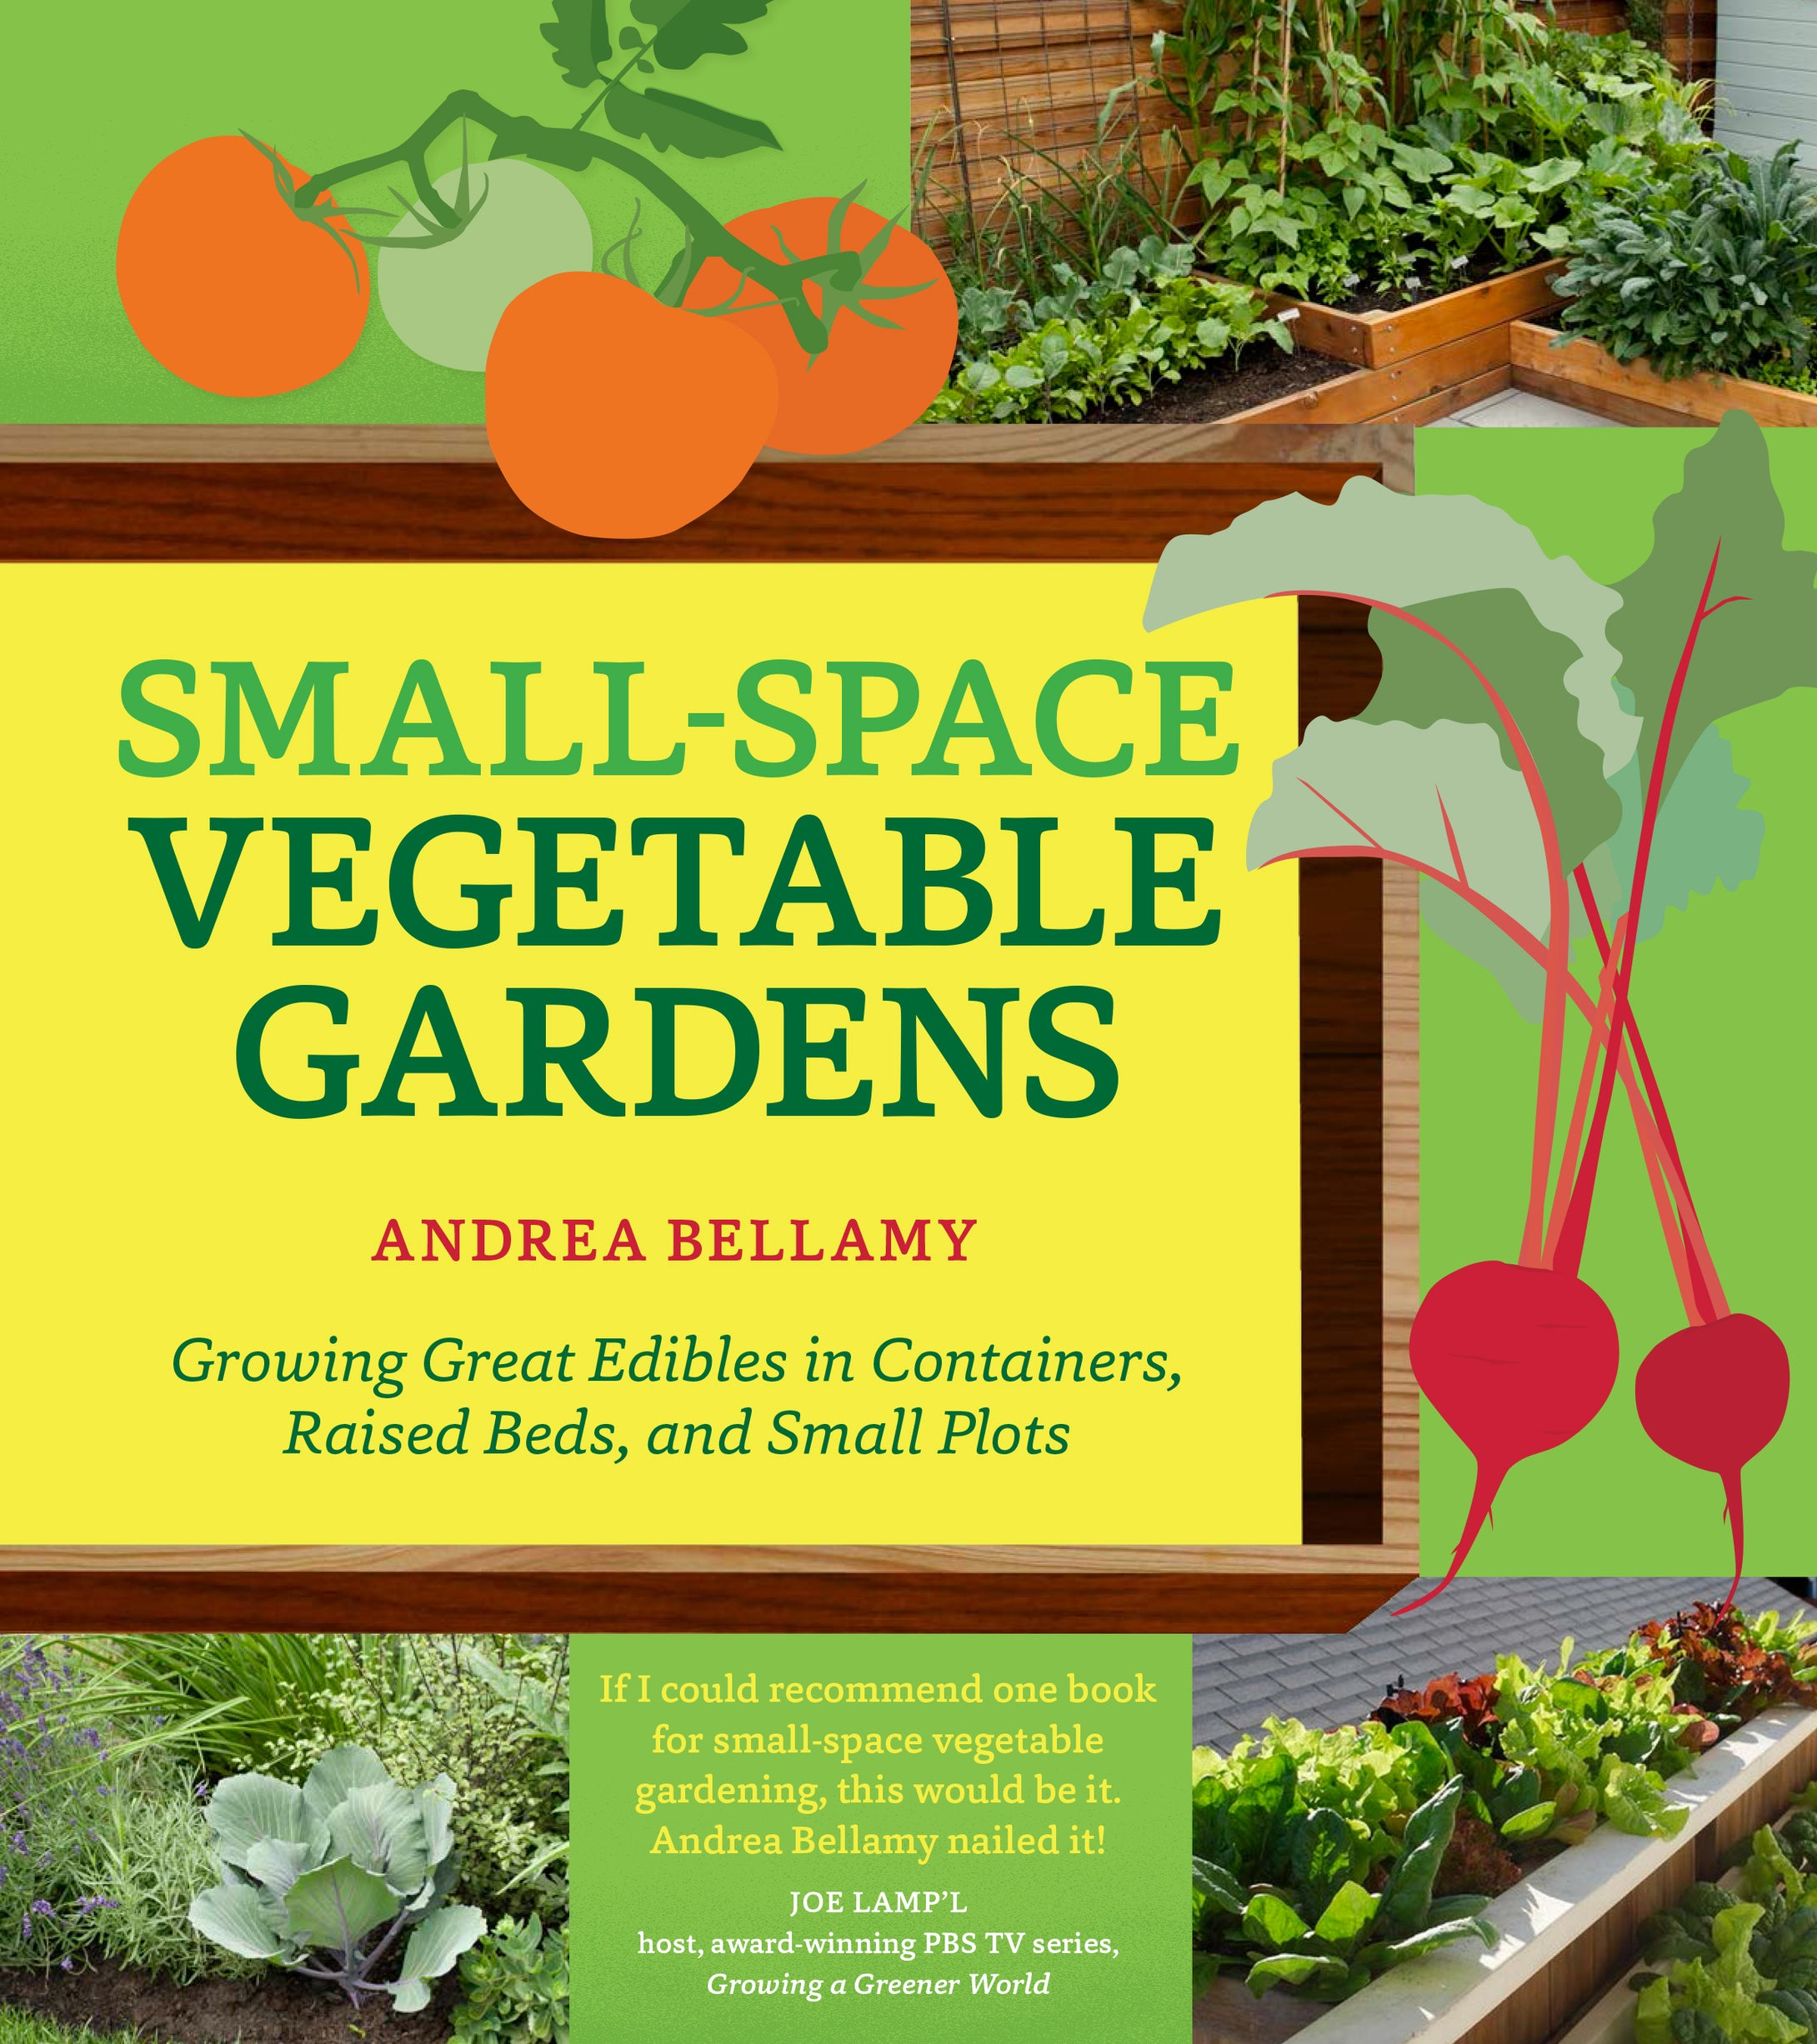 Small-Space Vegetable Gardens